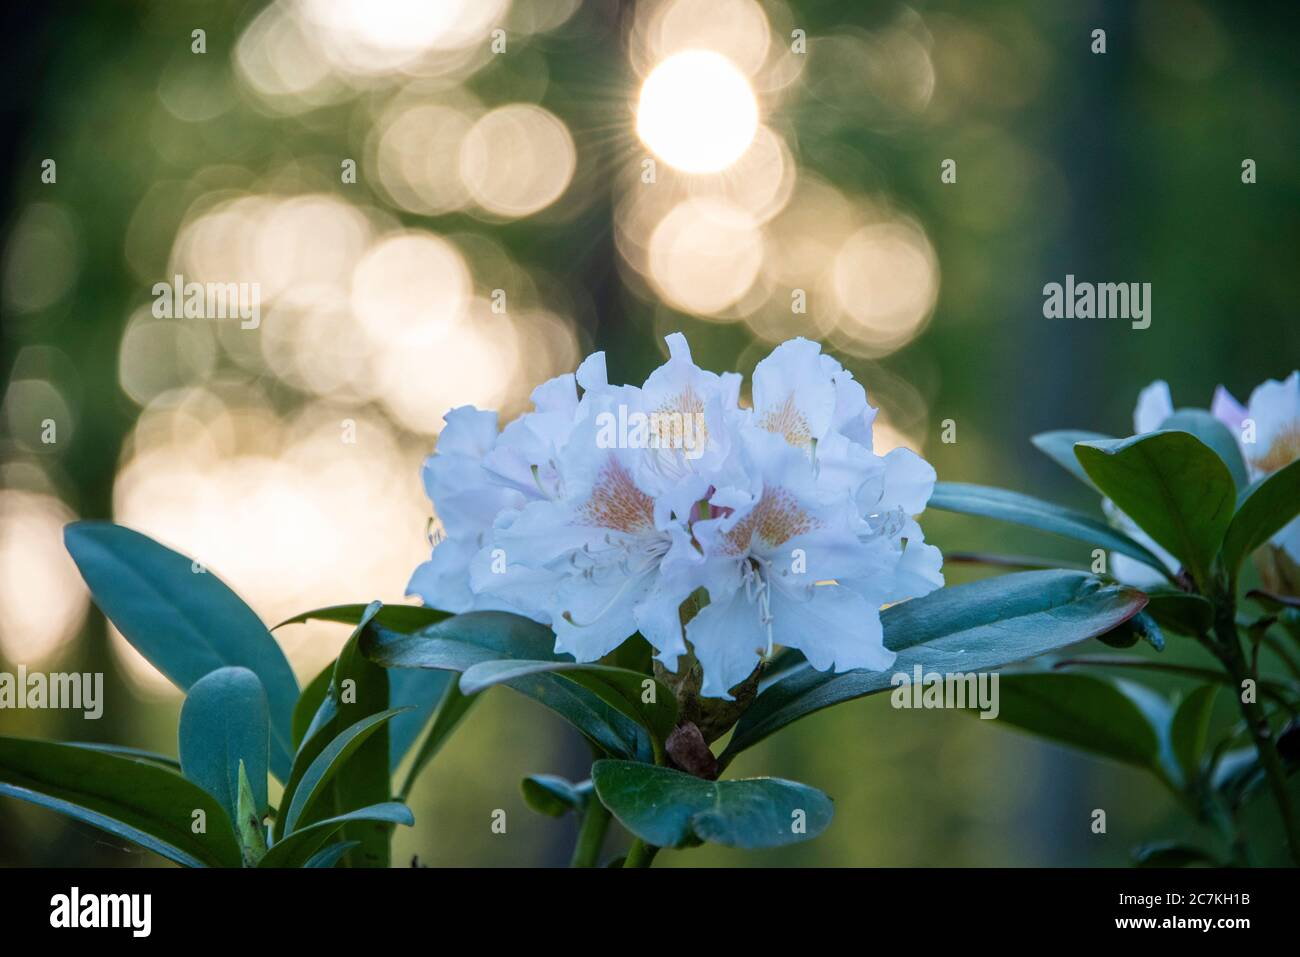 Rhododendron flowers, close-up Stock Photo